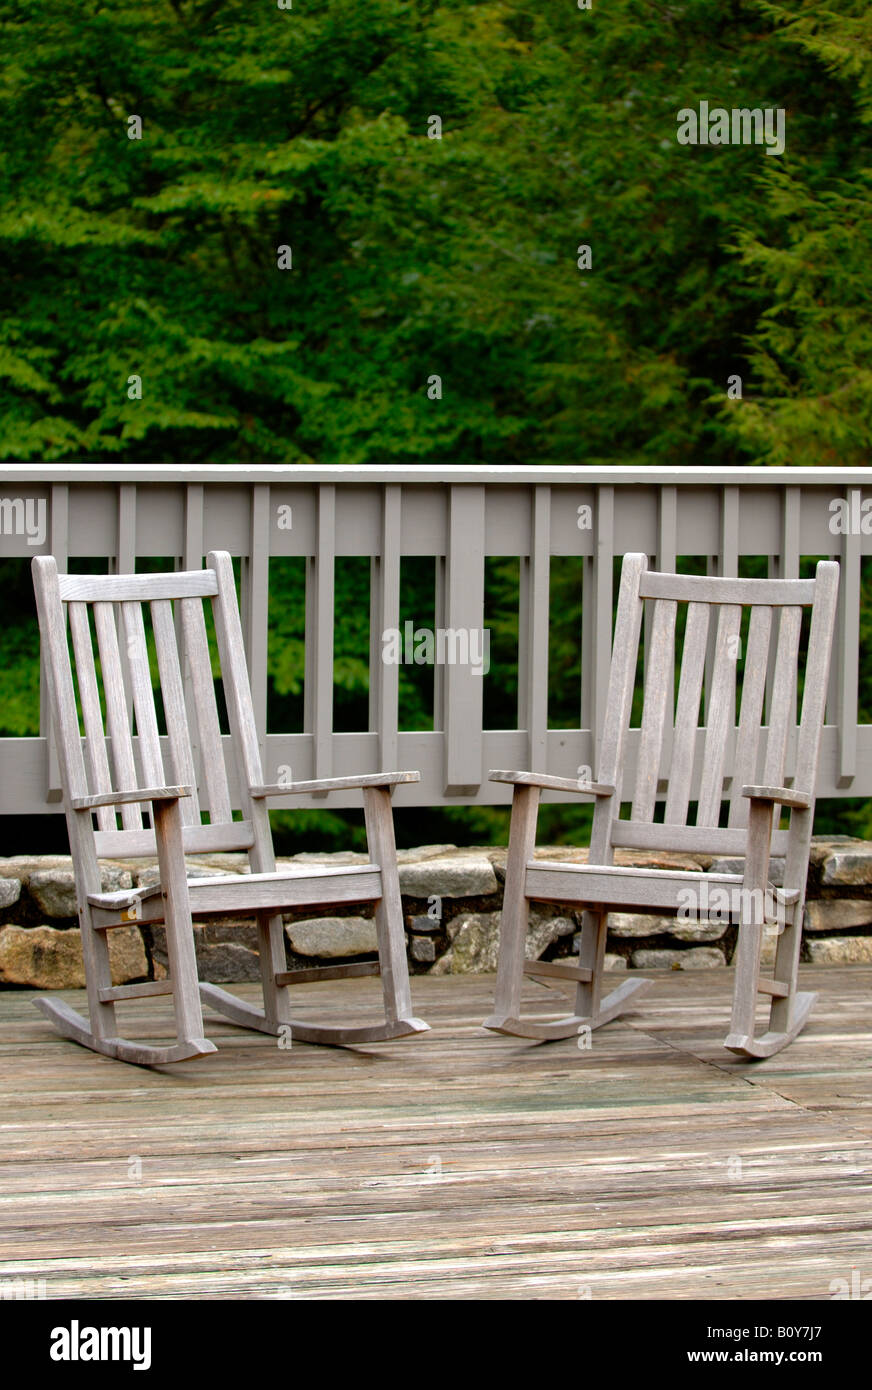 Chairs on a deck - Stock Image